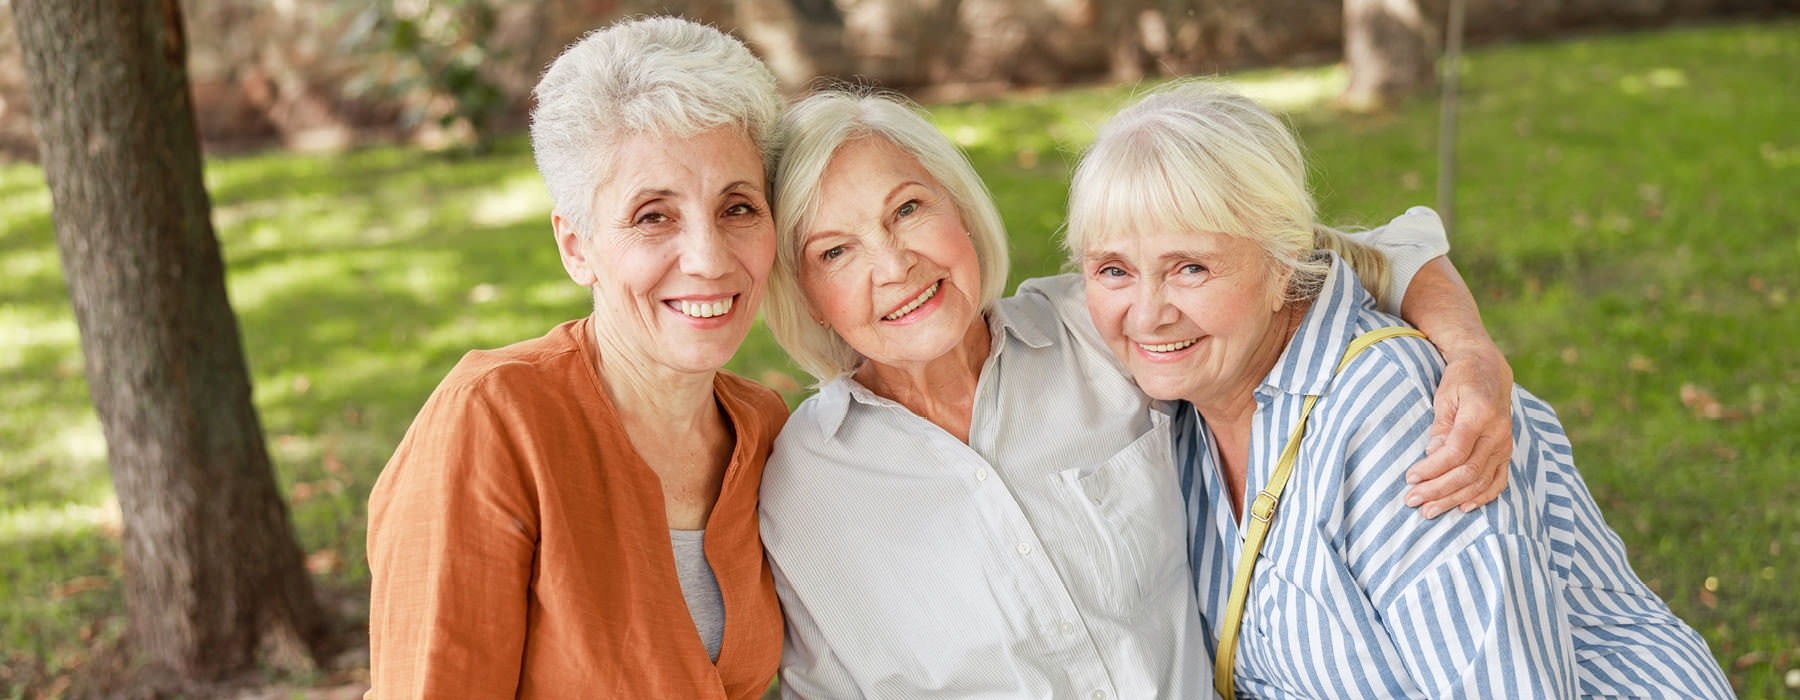 three women smile for the camera in a neighborhood park